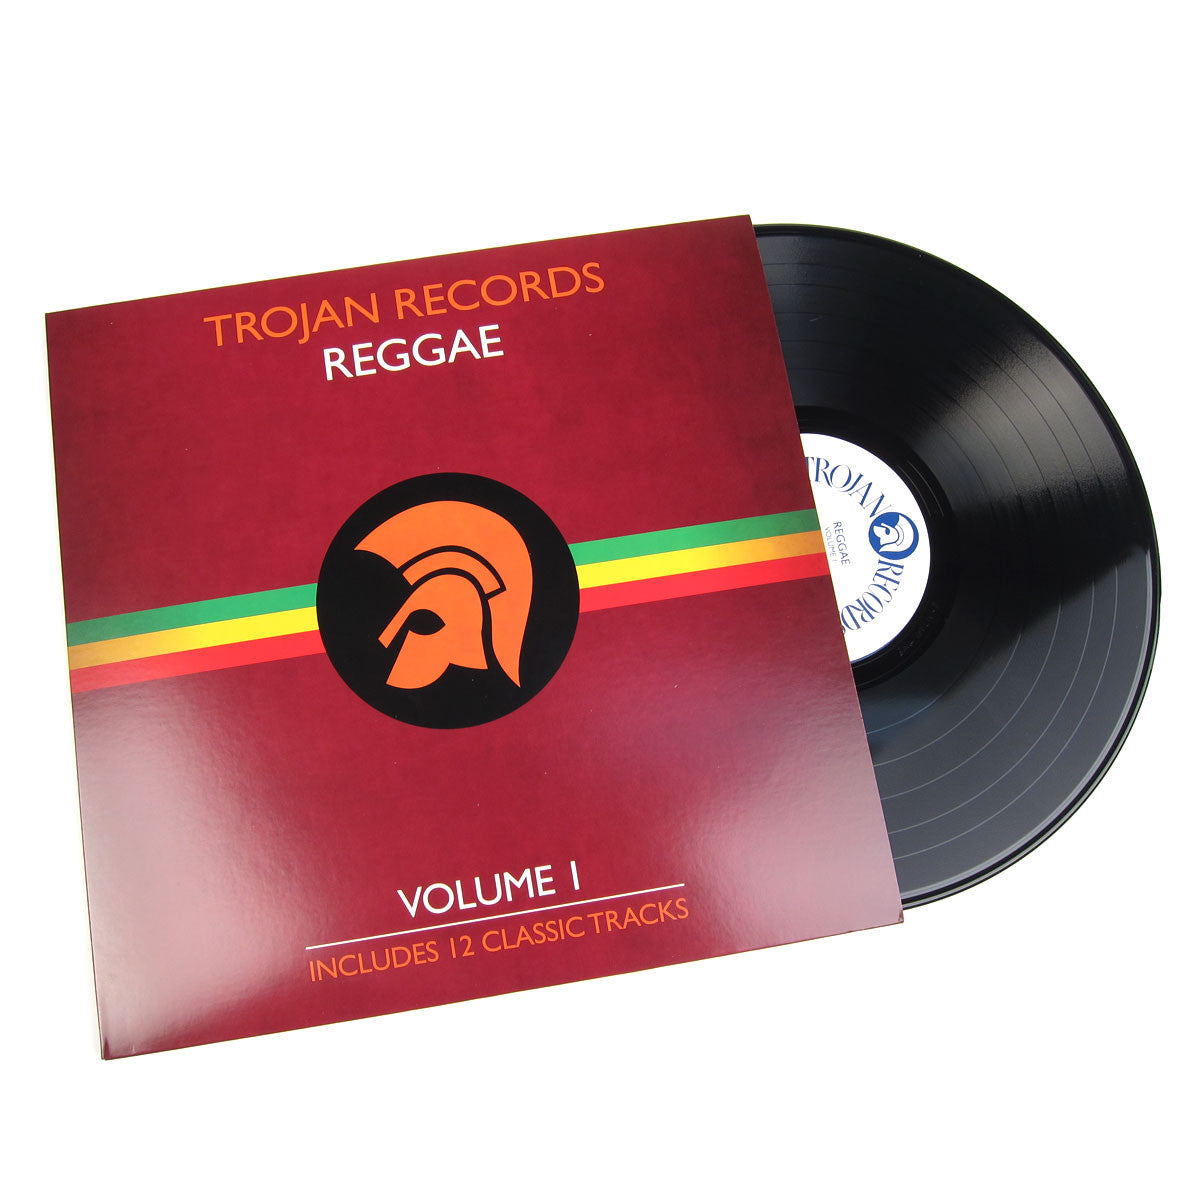 Trojan Records: Reggae Volume 1 Vinyl LP